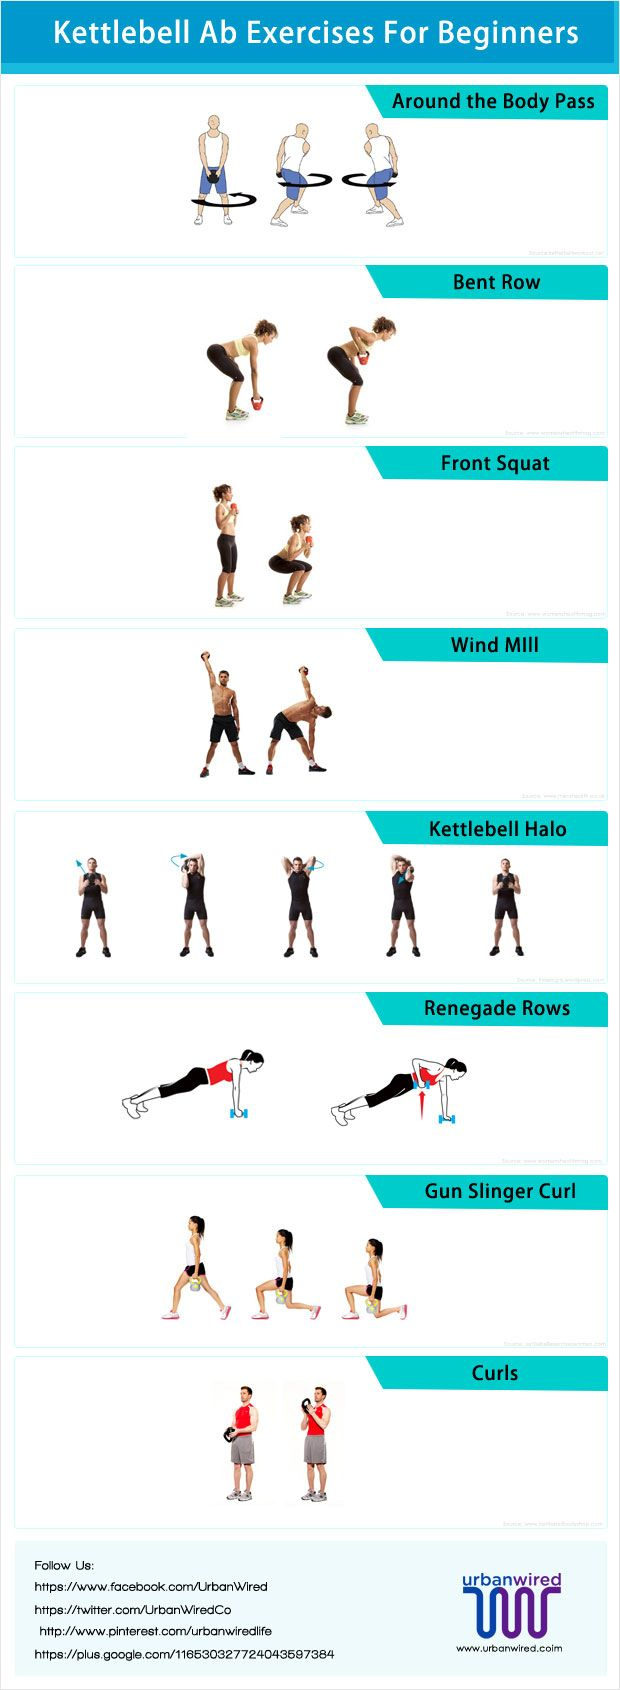 If you are looking for a very good resistance-training workout which will also help you lose weight. Kettlebell ab exercises are a good option for you. Beginner Workout Routine // Pretty Perfect Living